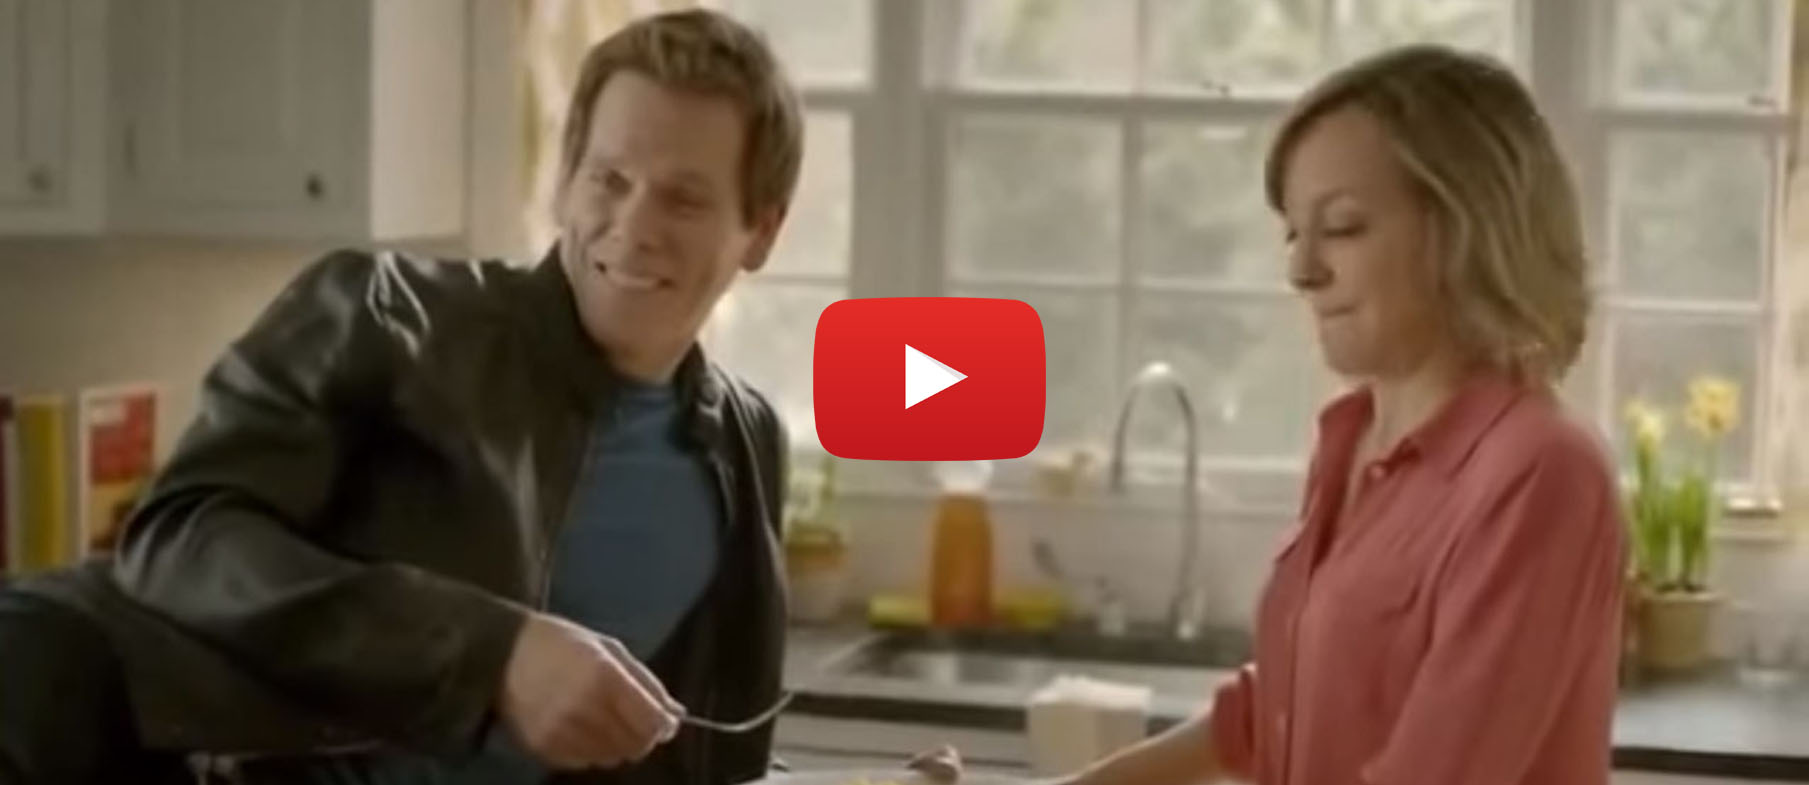 Kevin Bacon Adverts